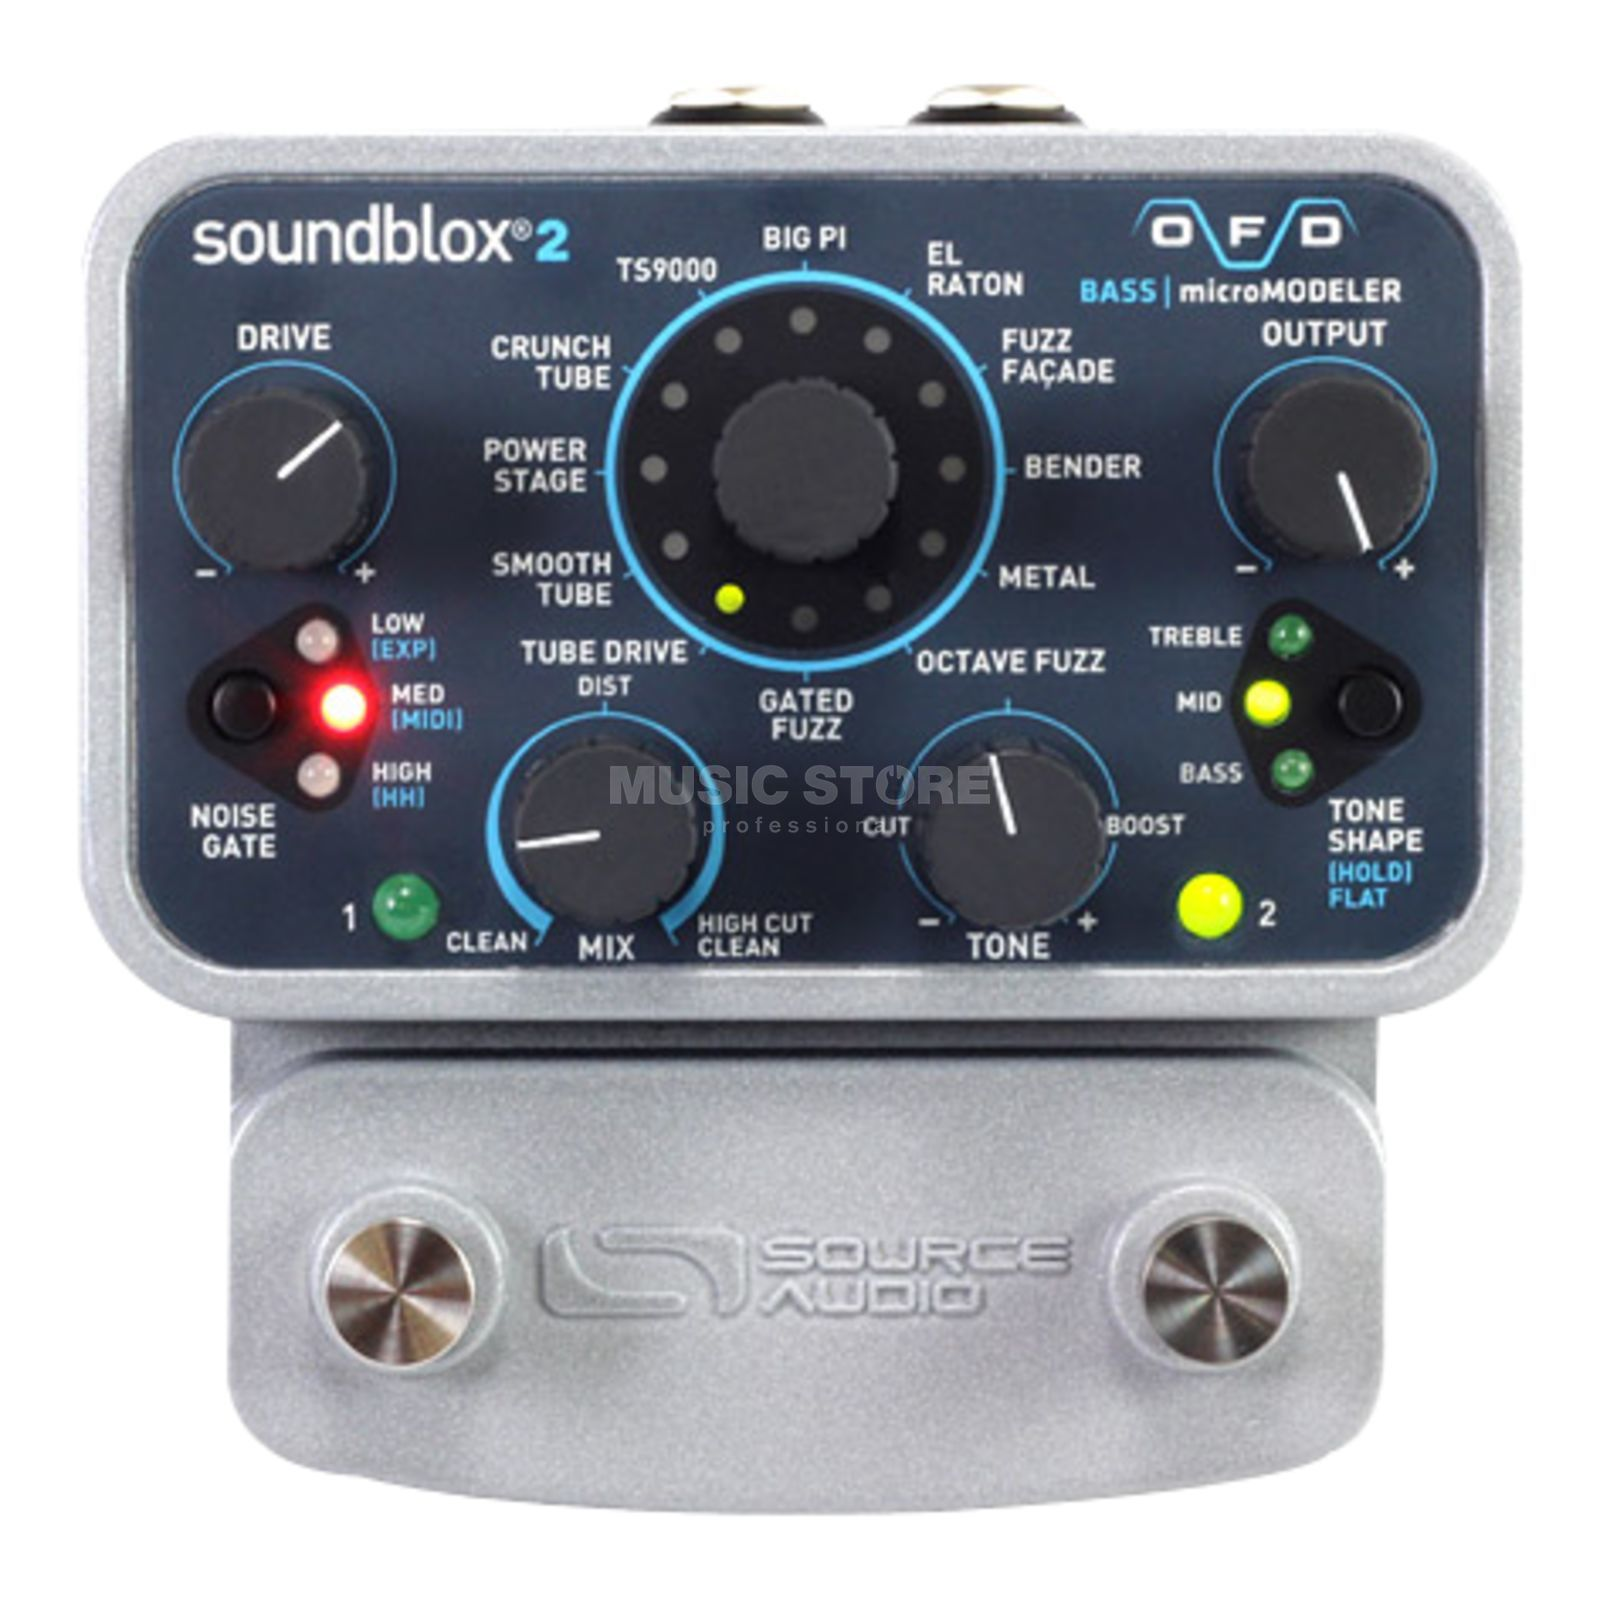 Source Audio Soundblox 2 OFD microModeler  Produktbillede